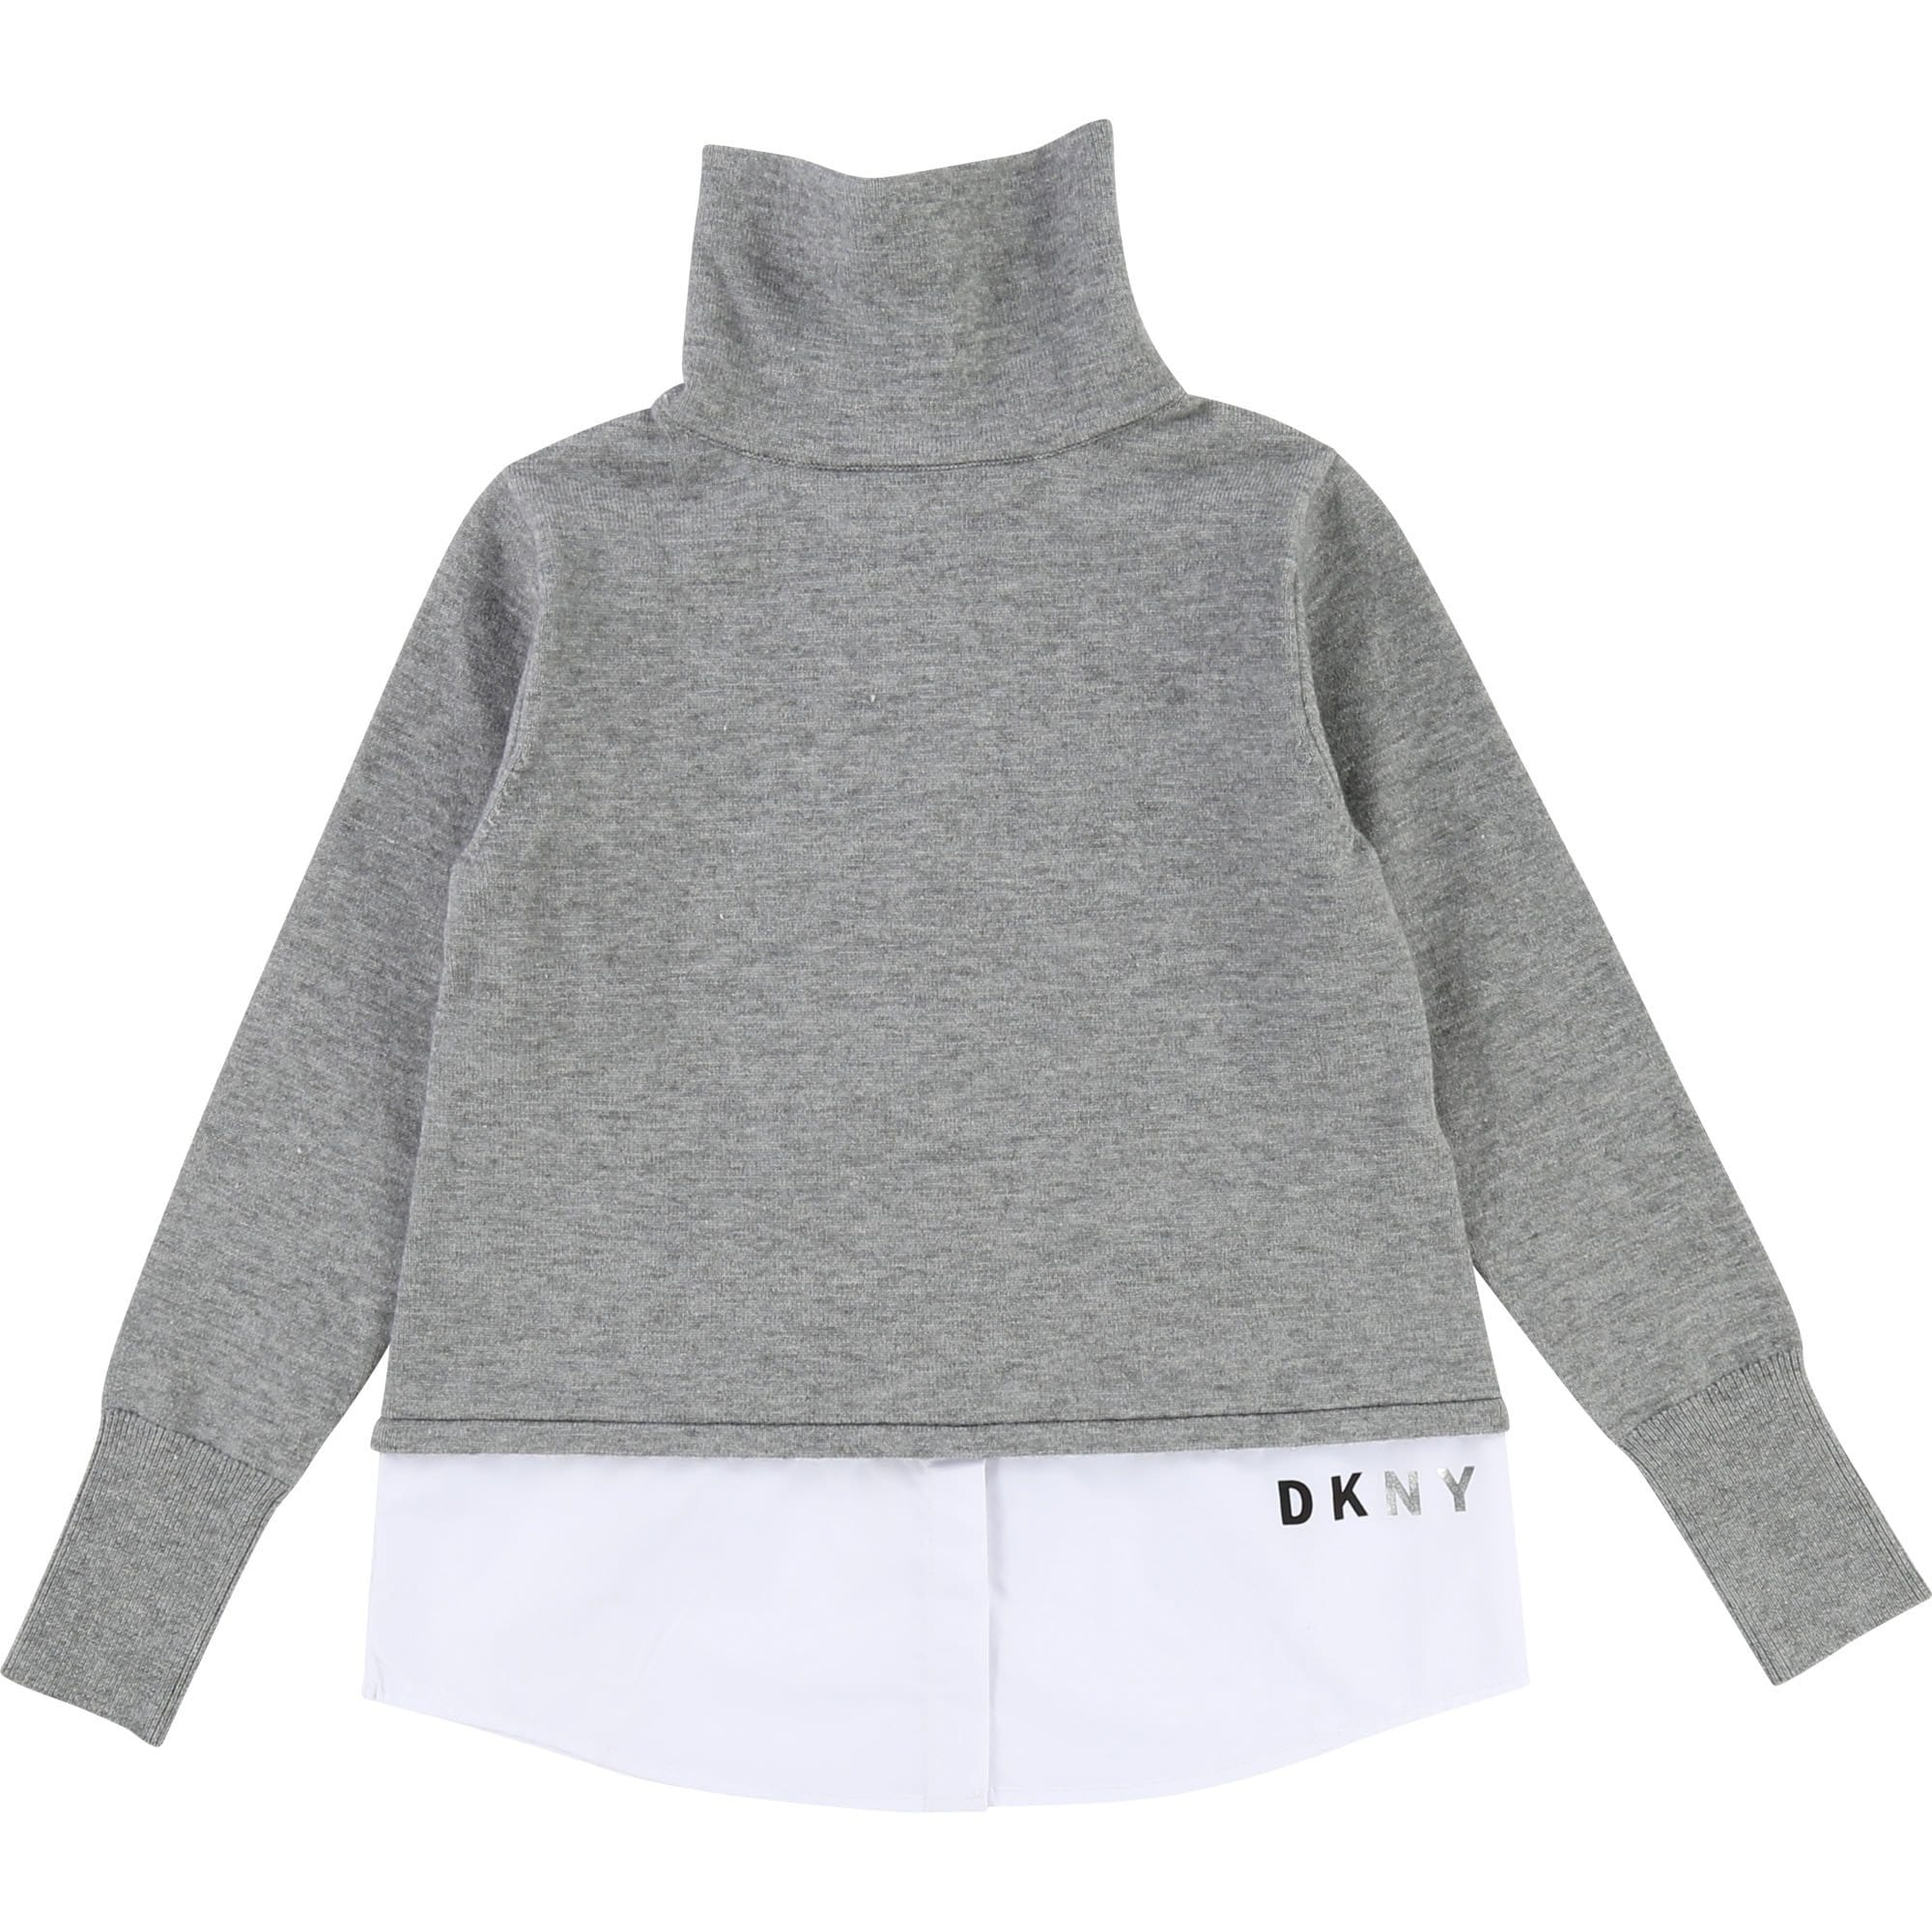 DKNY High Neck Layered Knit Jumper Grey Marle D35N78/A41